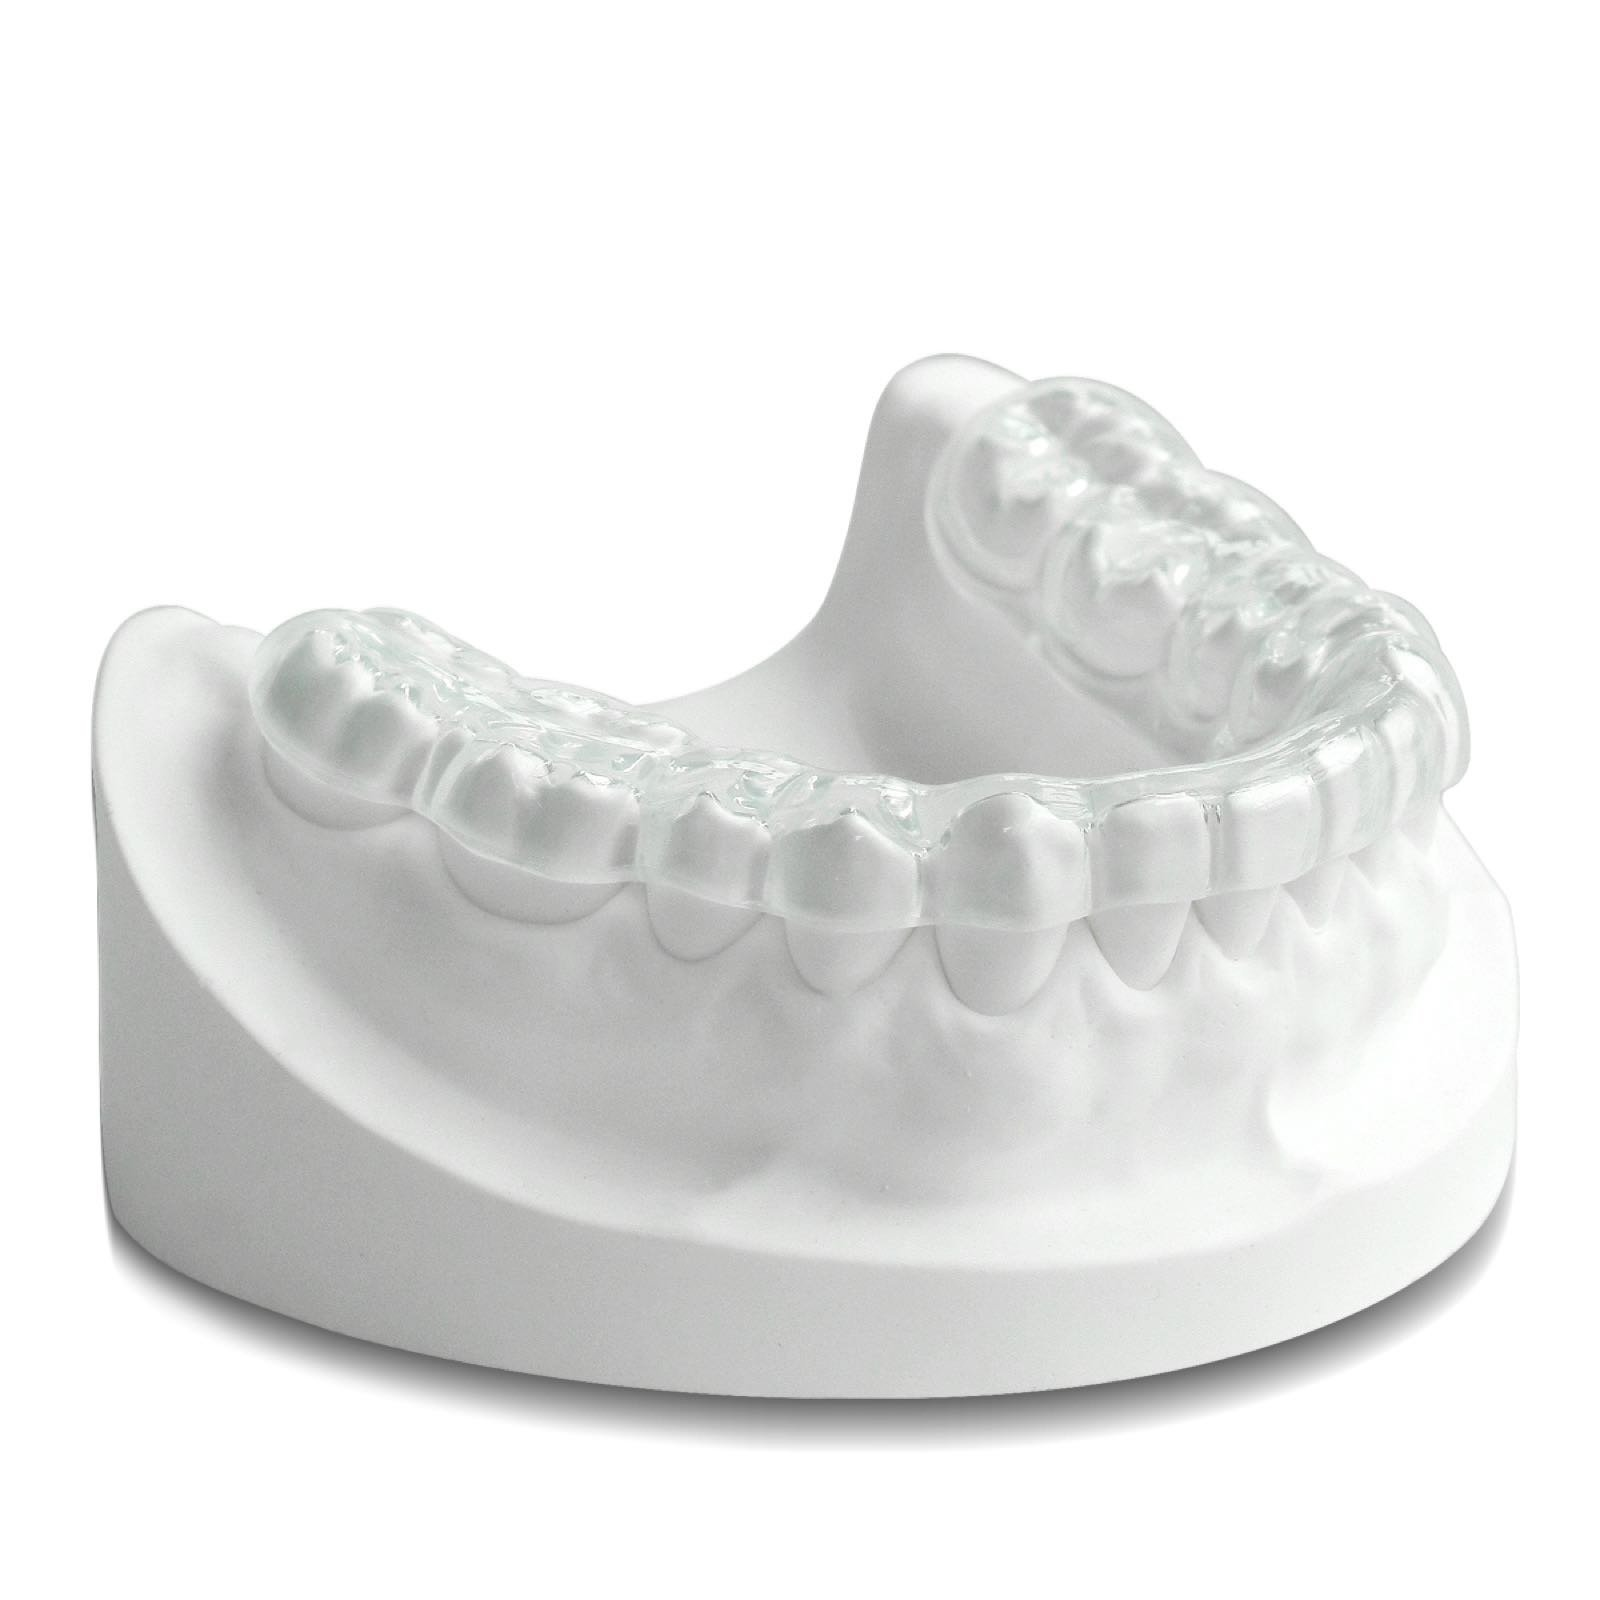 Custom Night Guard Lower - Dental TMJ Mouth Guards for Stop Teeth Grinding Bruxism Clenching with FDA BPA Free, Clear